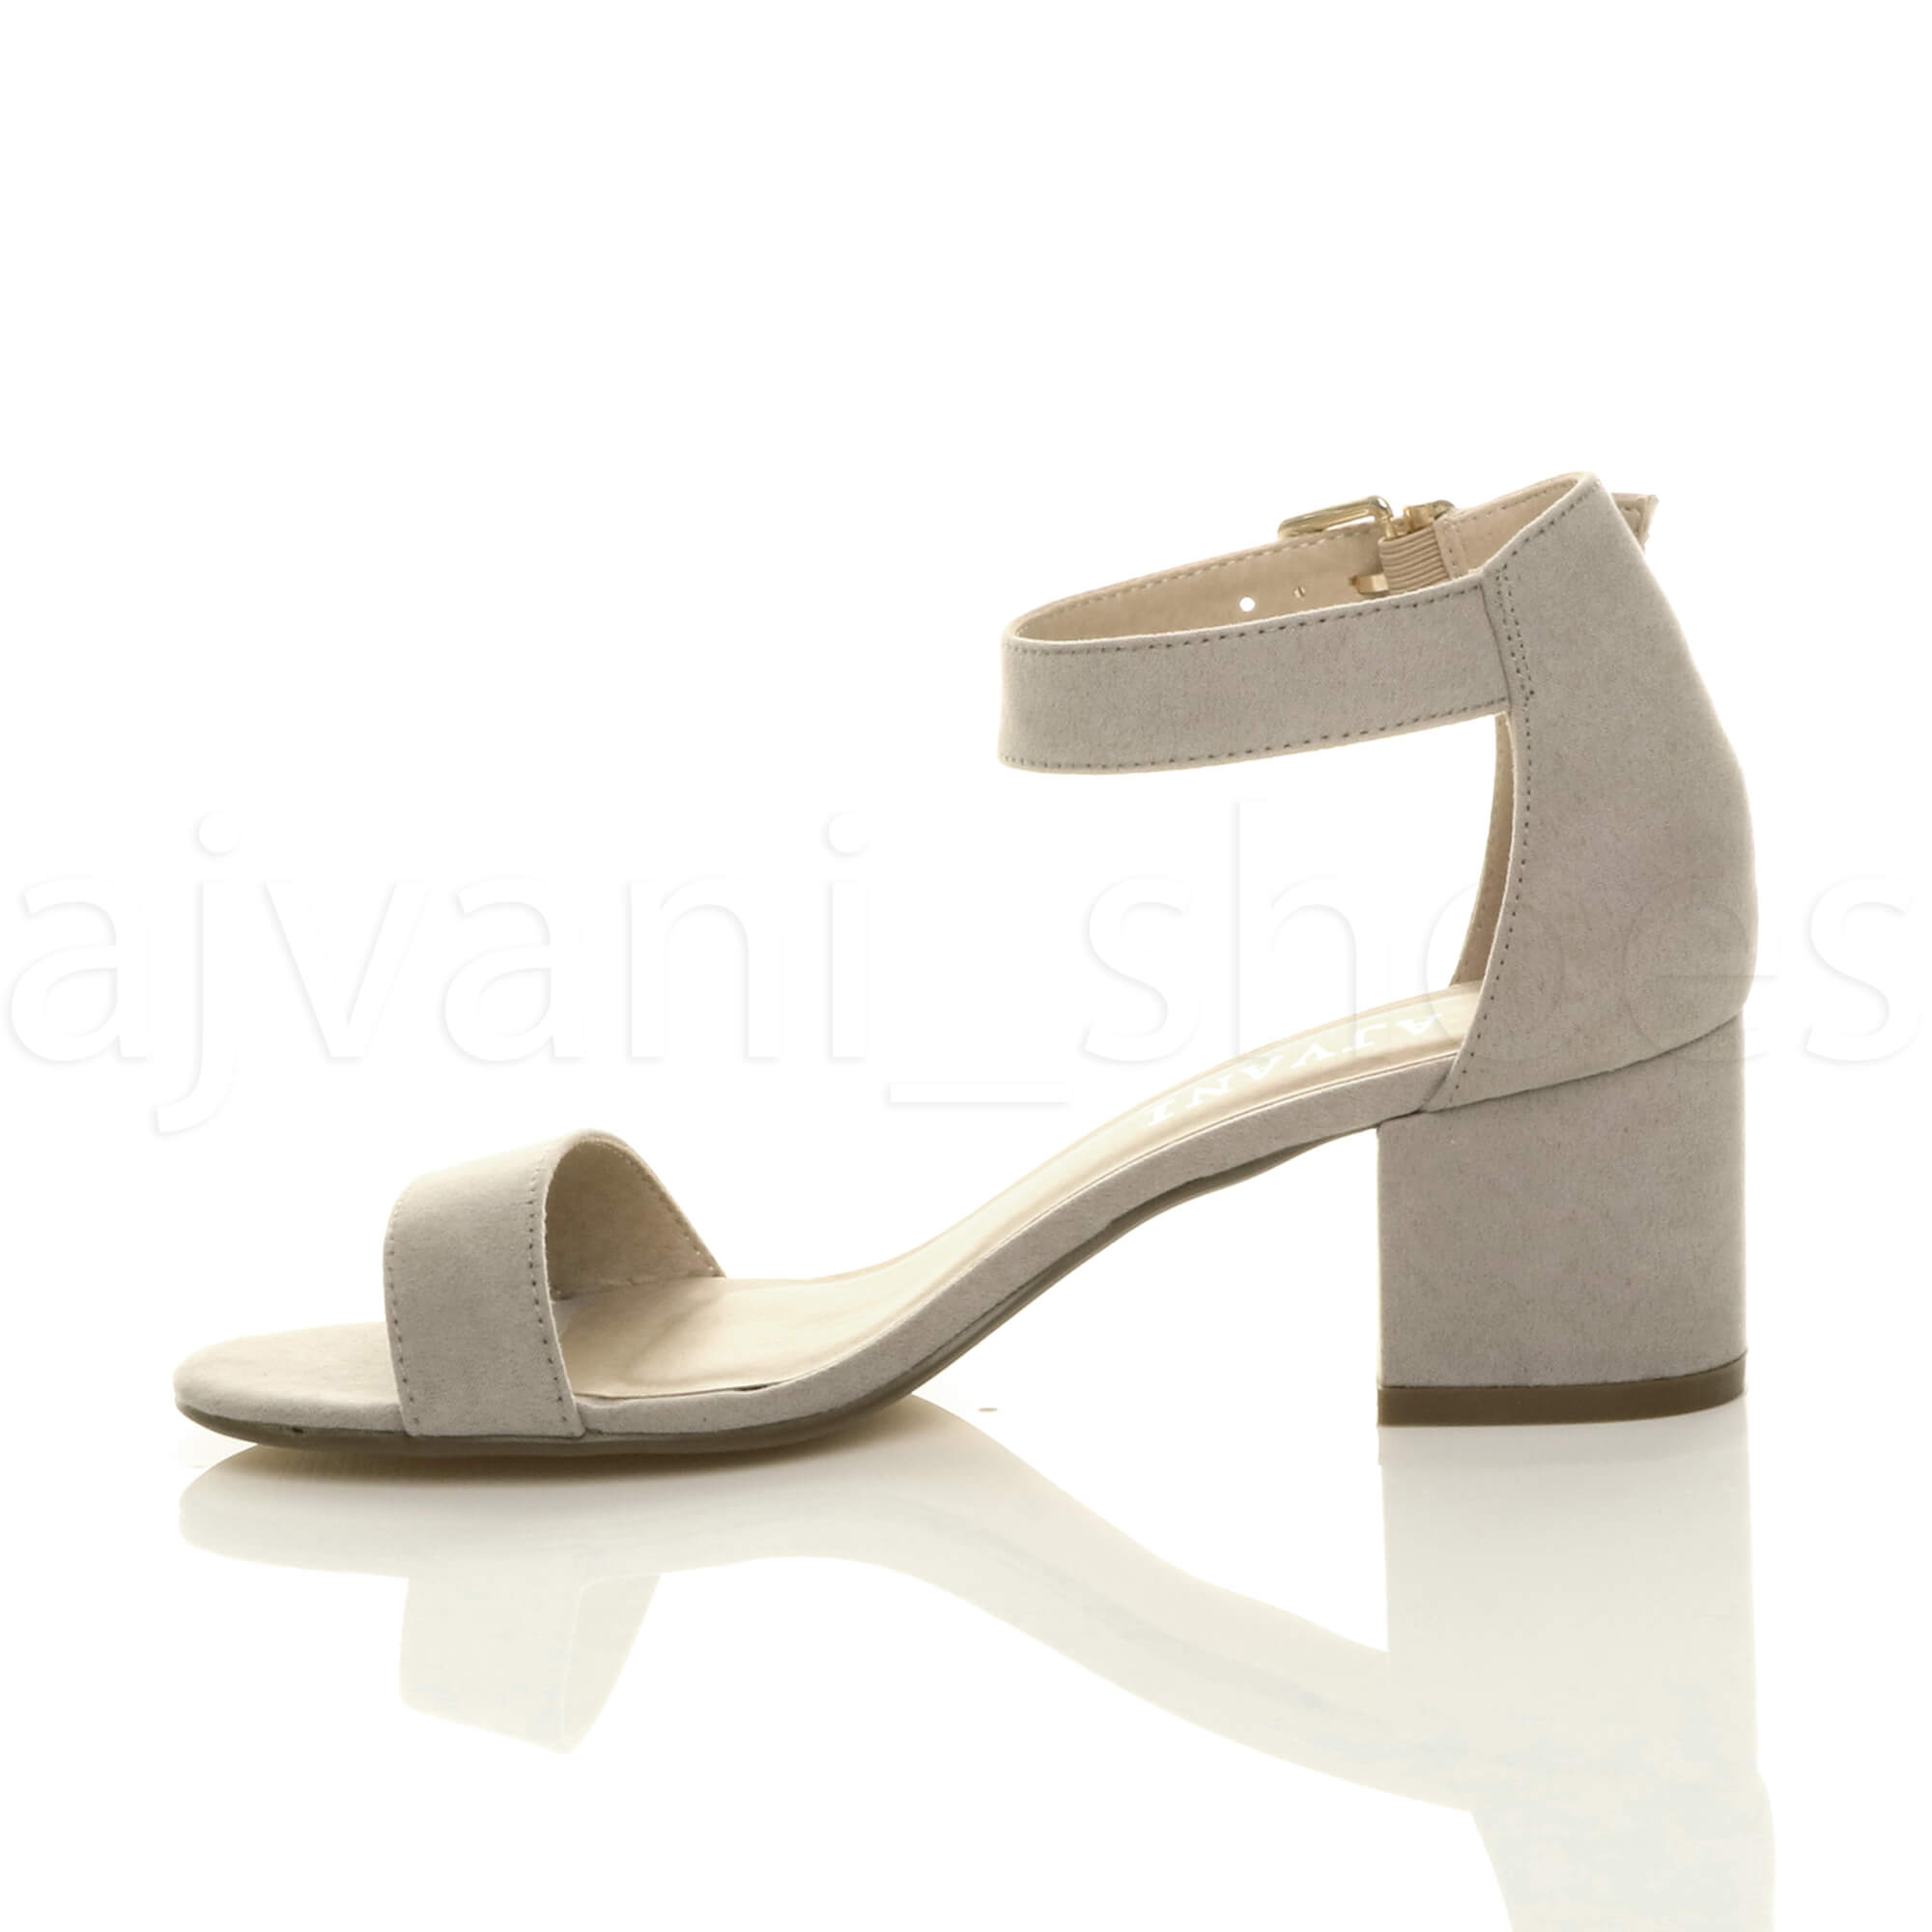 WOMENS-LADIES-LOW-MID-BLOCK-HEEL-ANKLE-STRAP-BUCKLE-PARTY-STRAPPY-SANDALS-SIZE thumbnail 86